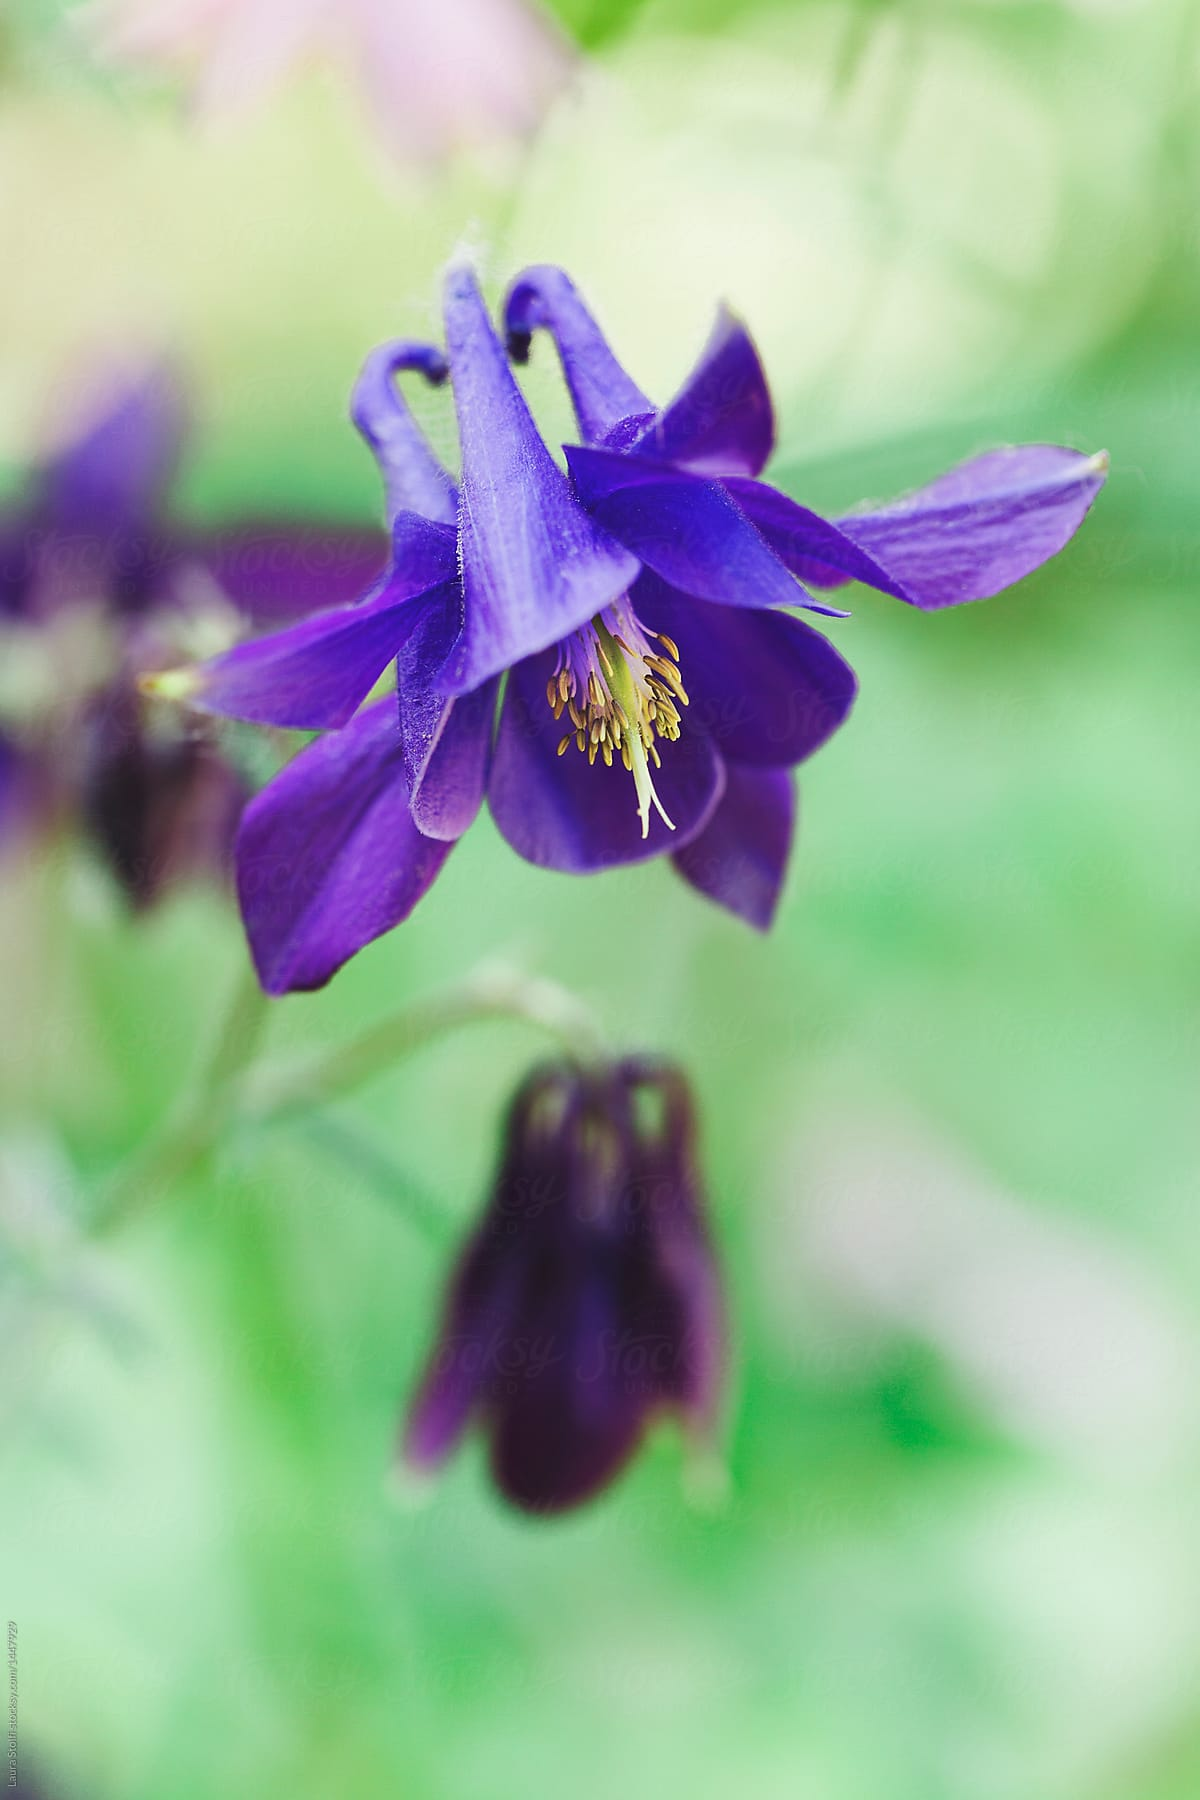 Close up of dark purple columbine flower and buds stocksy united close up of dark purple columbine flower and buds by laura stolfi for stocksy united izmirmasajfo